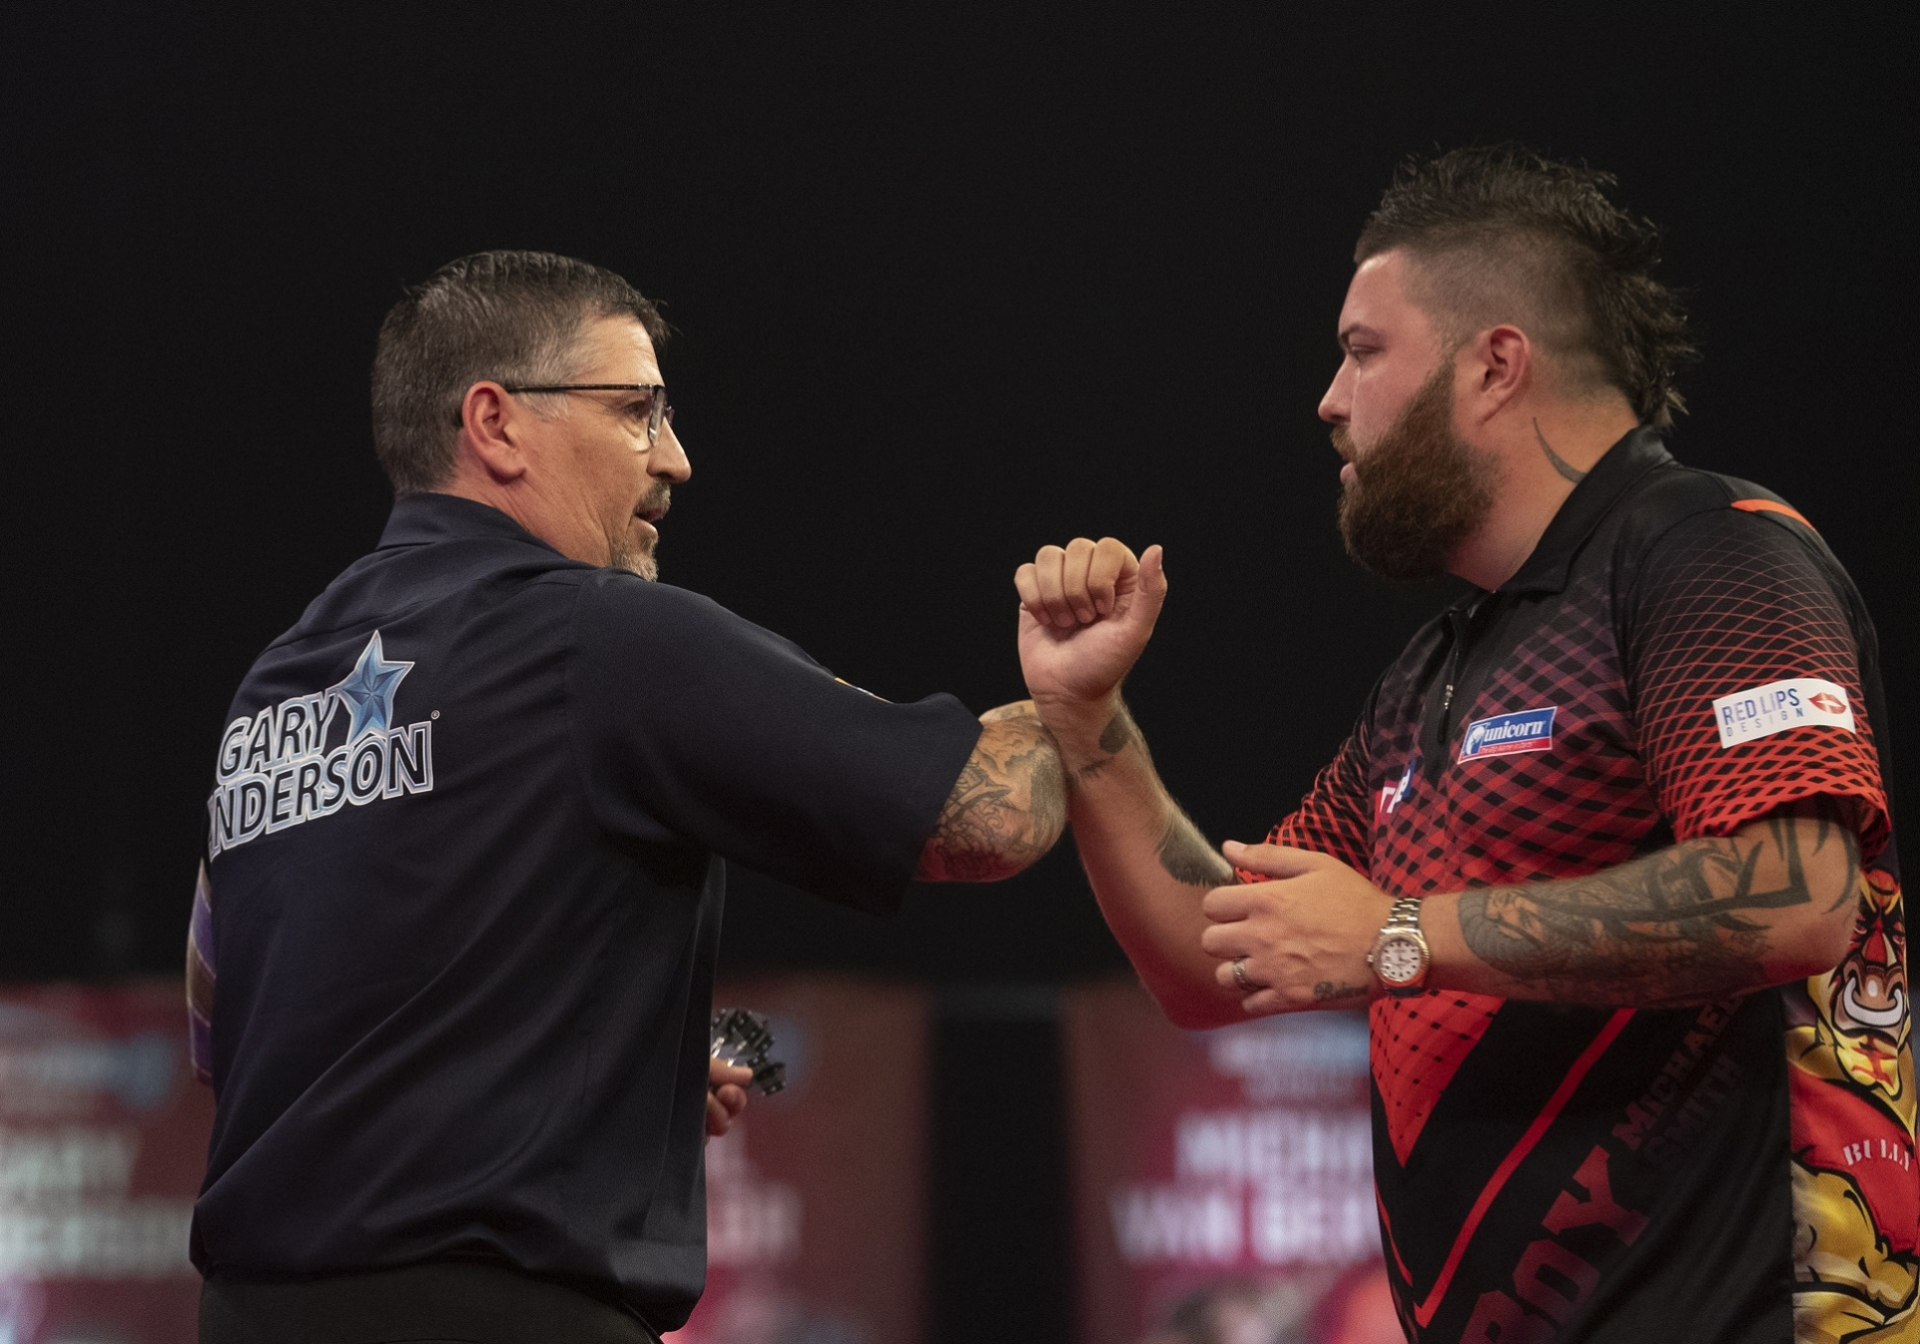 Gary Anderson & Michael Smith